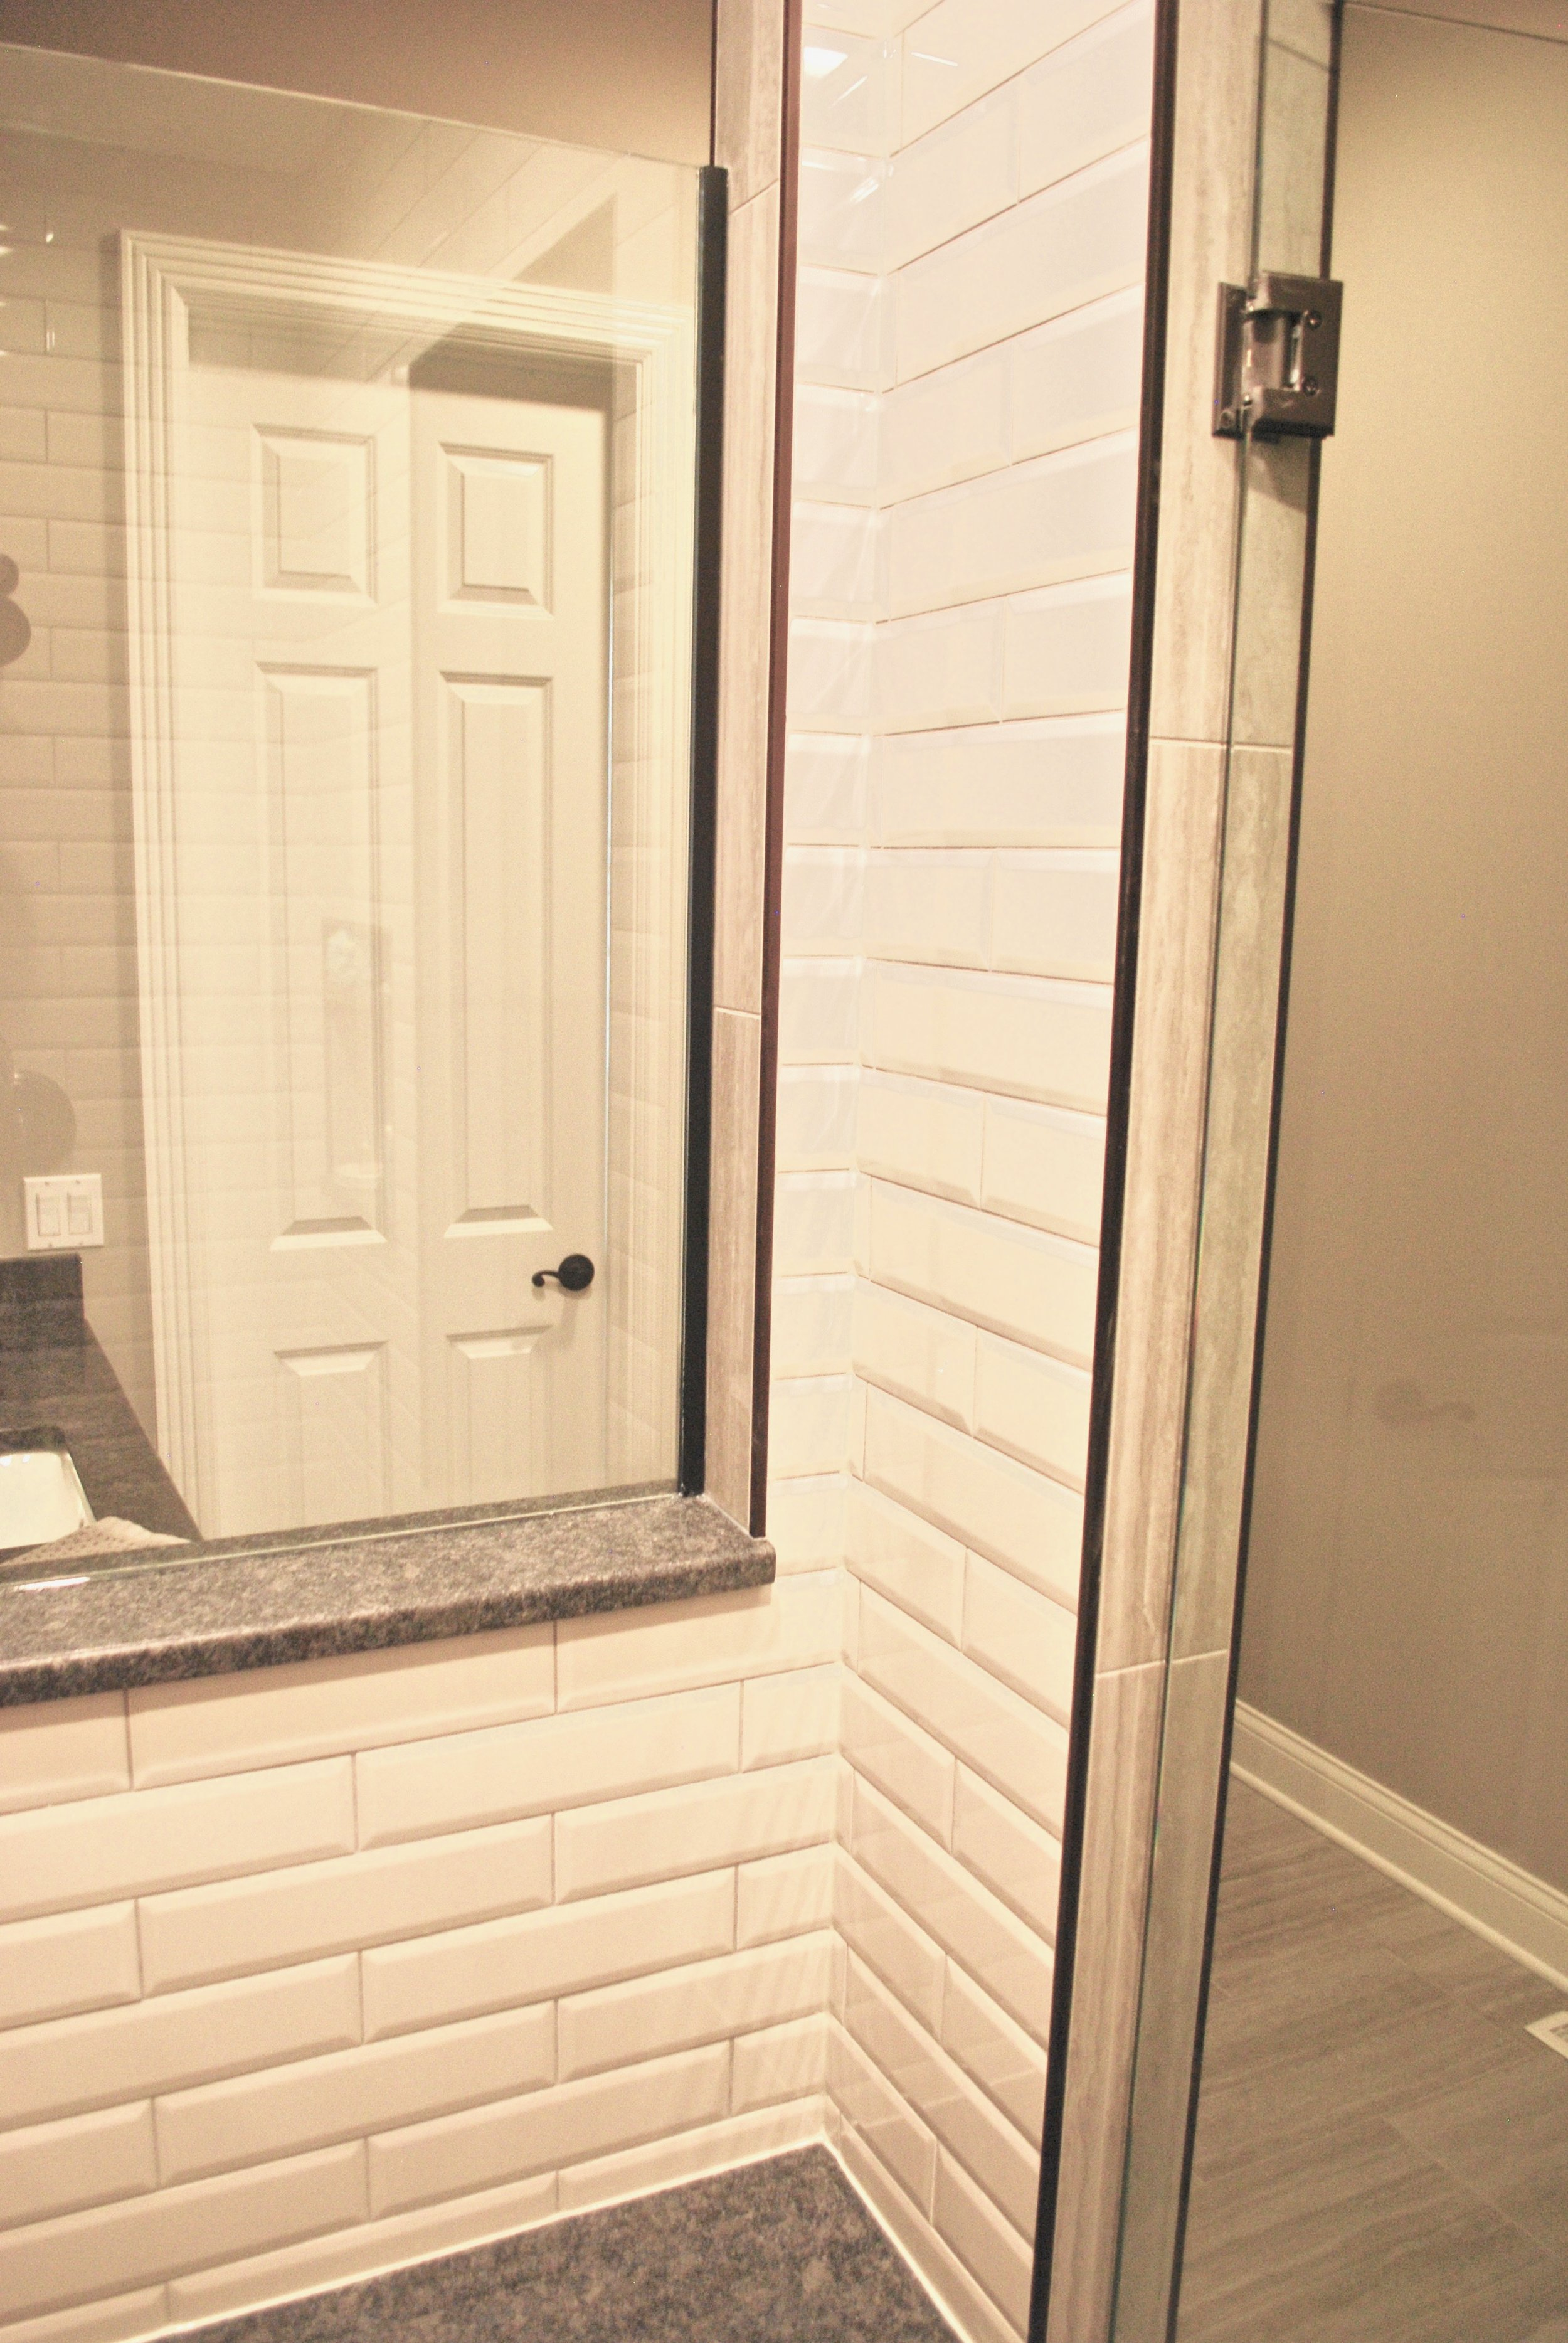 Custom Bath Renovations & Remodeling in this St. Charles Custom Home. Lookin for a Tile Work Professional to Install Tile in Your Shower? Call Southampton